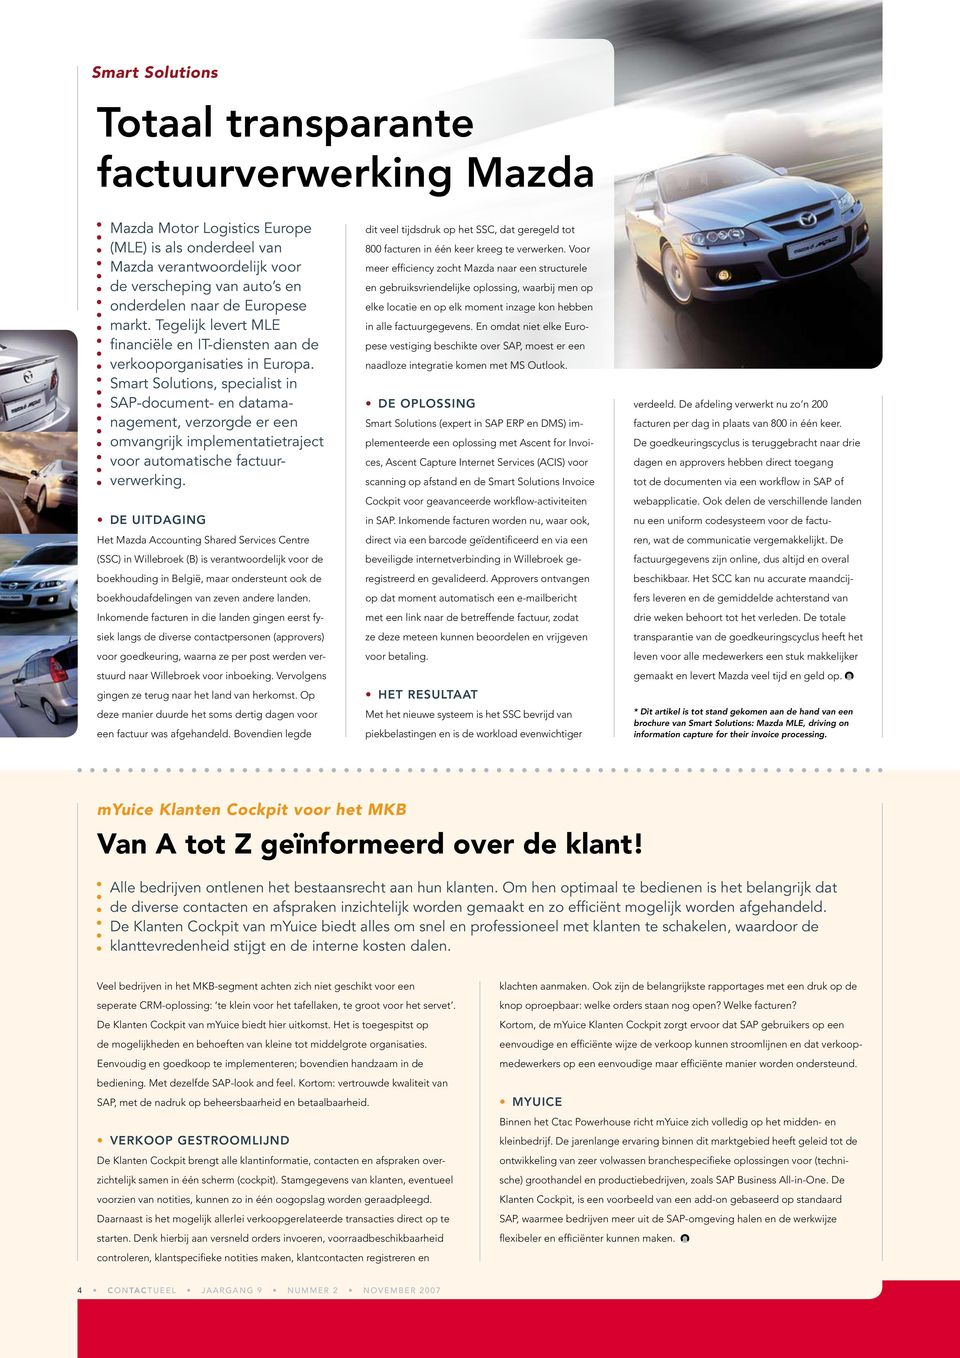 Smart Solutions, specialist in SAP-document- en datamanagement, verzorgde er een omvangrijk implementatietraject voor automatische factuurverwerking.